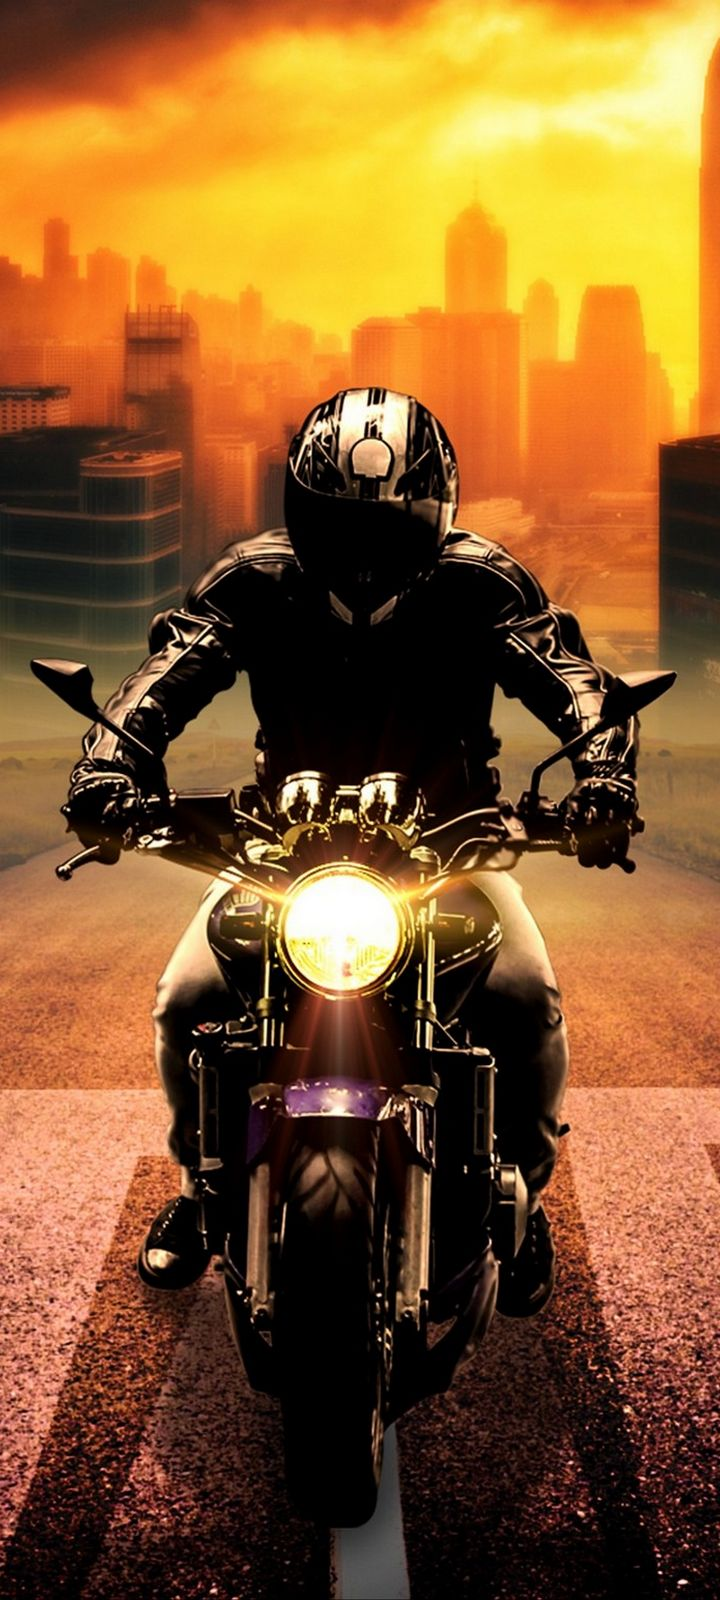 Biker Bike Motorcycle Wallpaper 720x1600